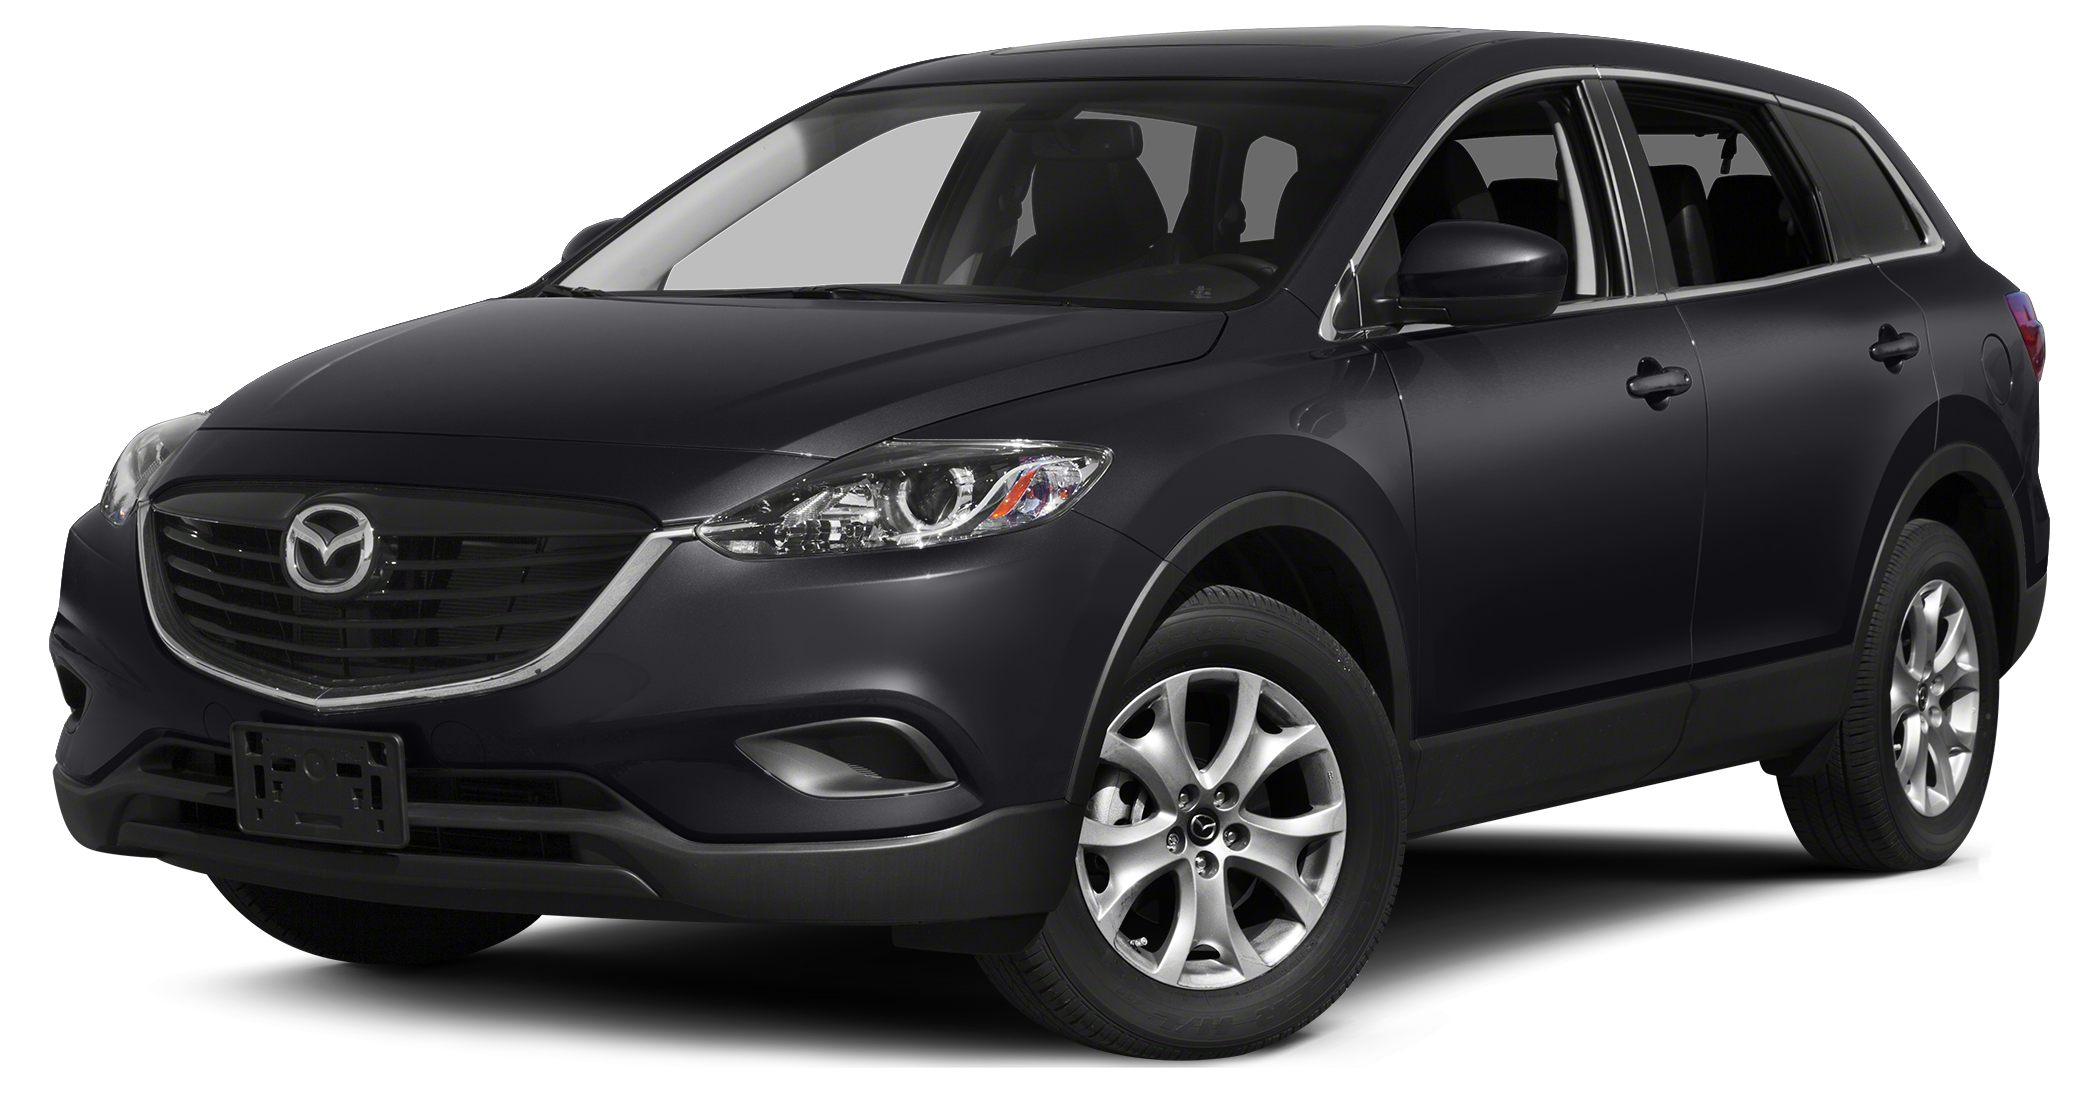 2014 Mazda CX-9 Sport  ONE PRICE STOP NO HASSLE NO HAGGLE CAR BUYING EXPERIENCE Miles